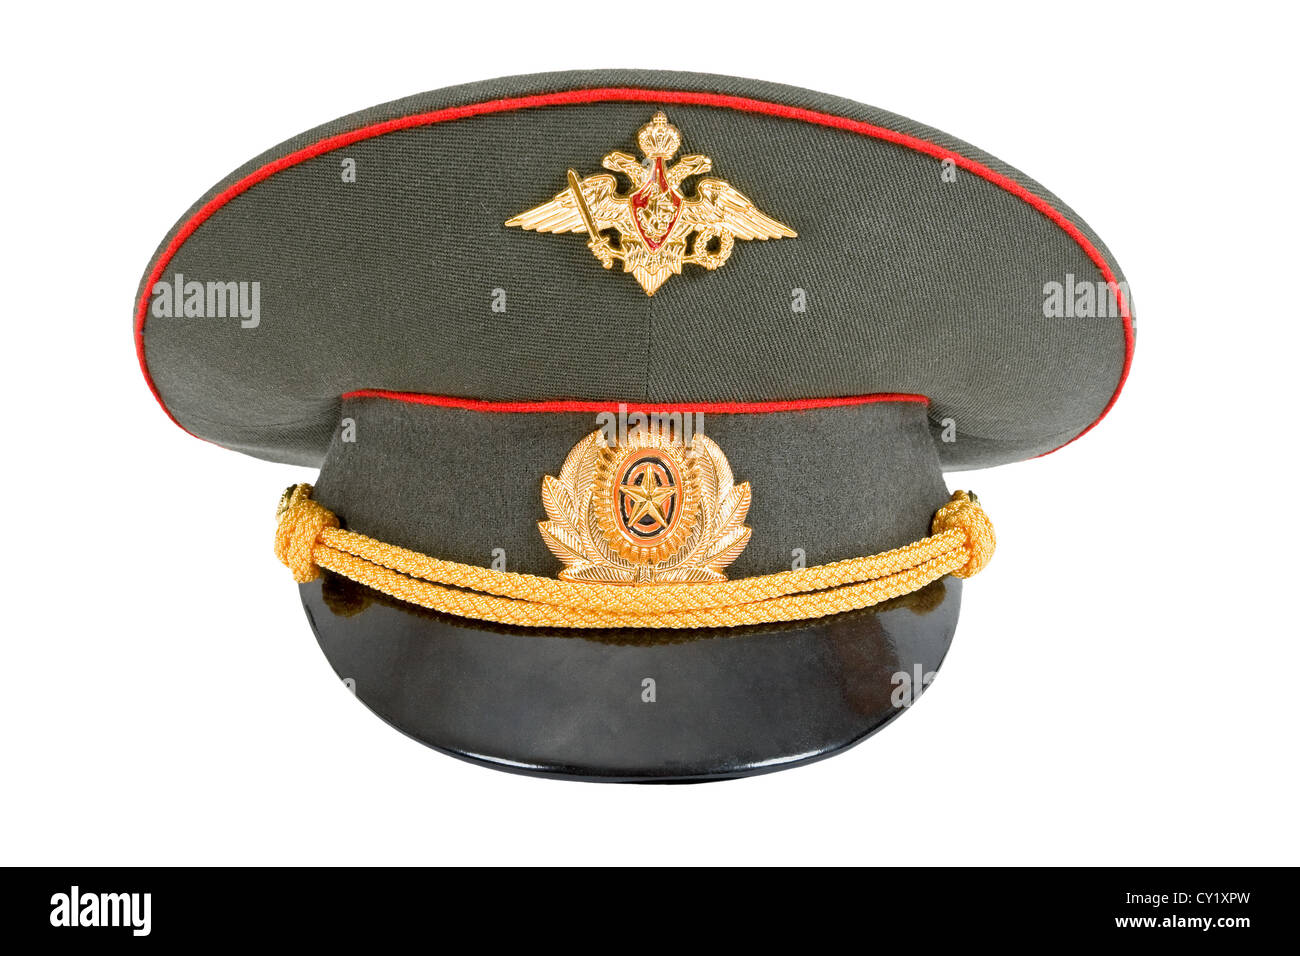 ab5ddc78008 Russian Military Officer Cap isolated on white background Stock ...